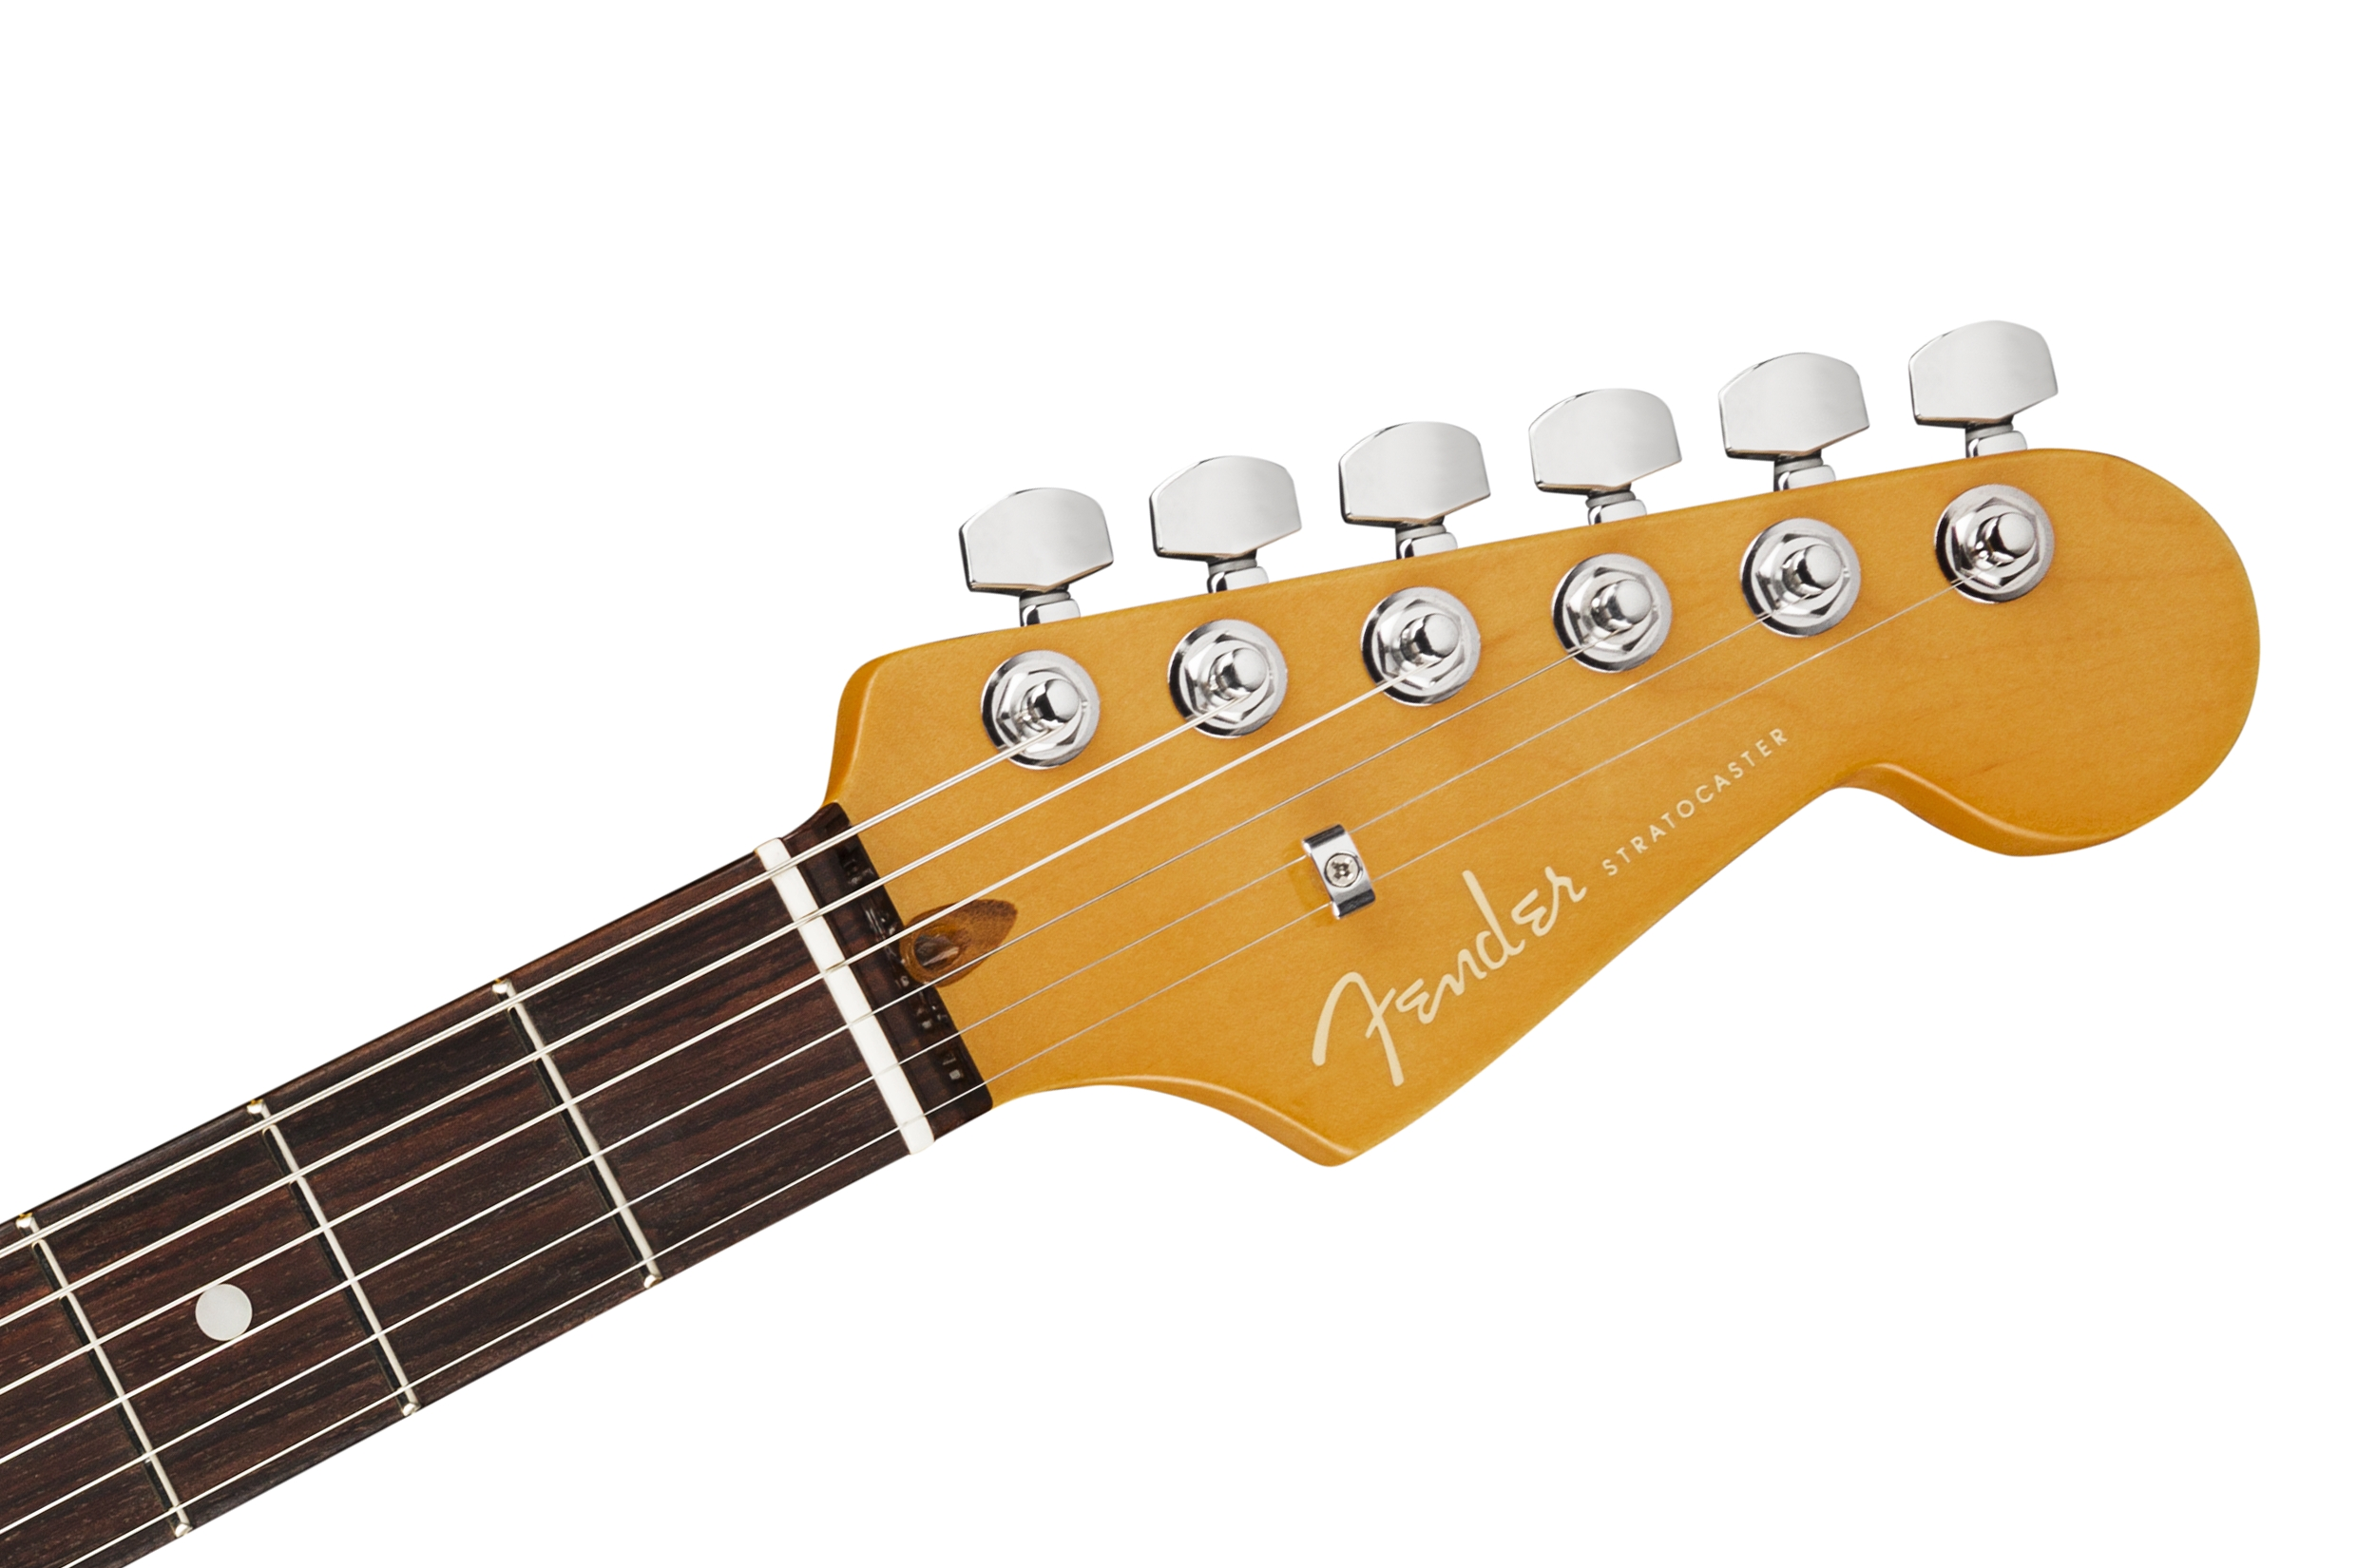 American Ultra Stratocaster® HSS | Electric Guitars on fender guitar wiring diagrams, fender stratocaster wiring-diagram, fender strat s1 diagram, mexican strat wiring diagram, fender fat strat schematic, fender strat ultra wiring-diagram, fender s1 switch schematics, american deluxe strat wiring diagram, fender stratocaster pickup wiring, fat strat wiring diagram,